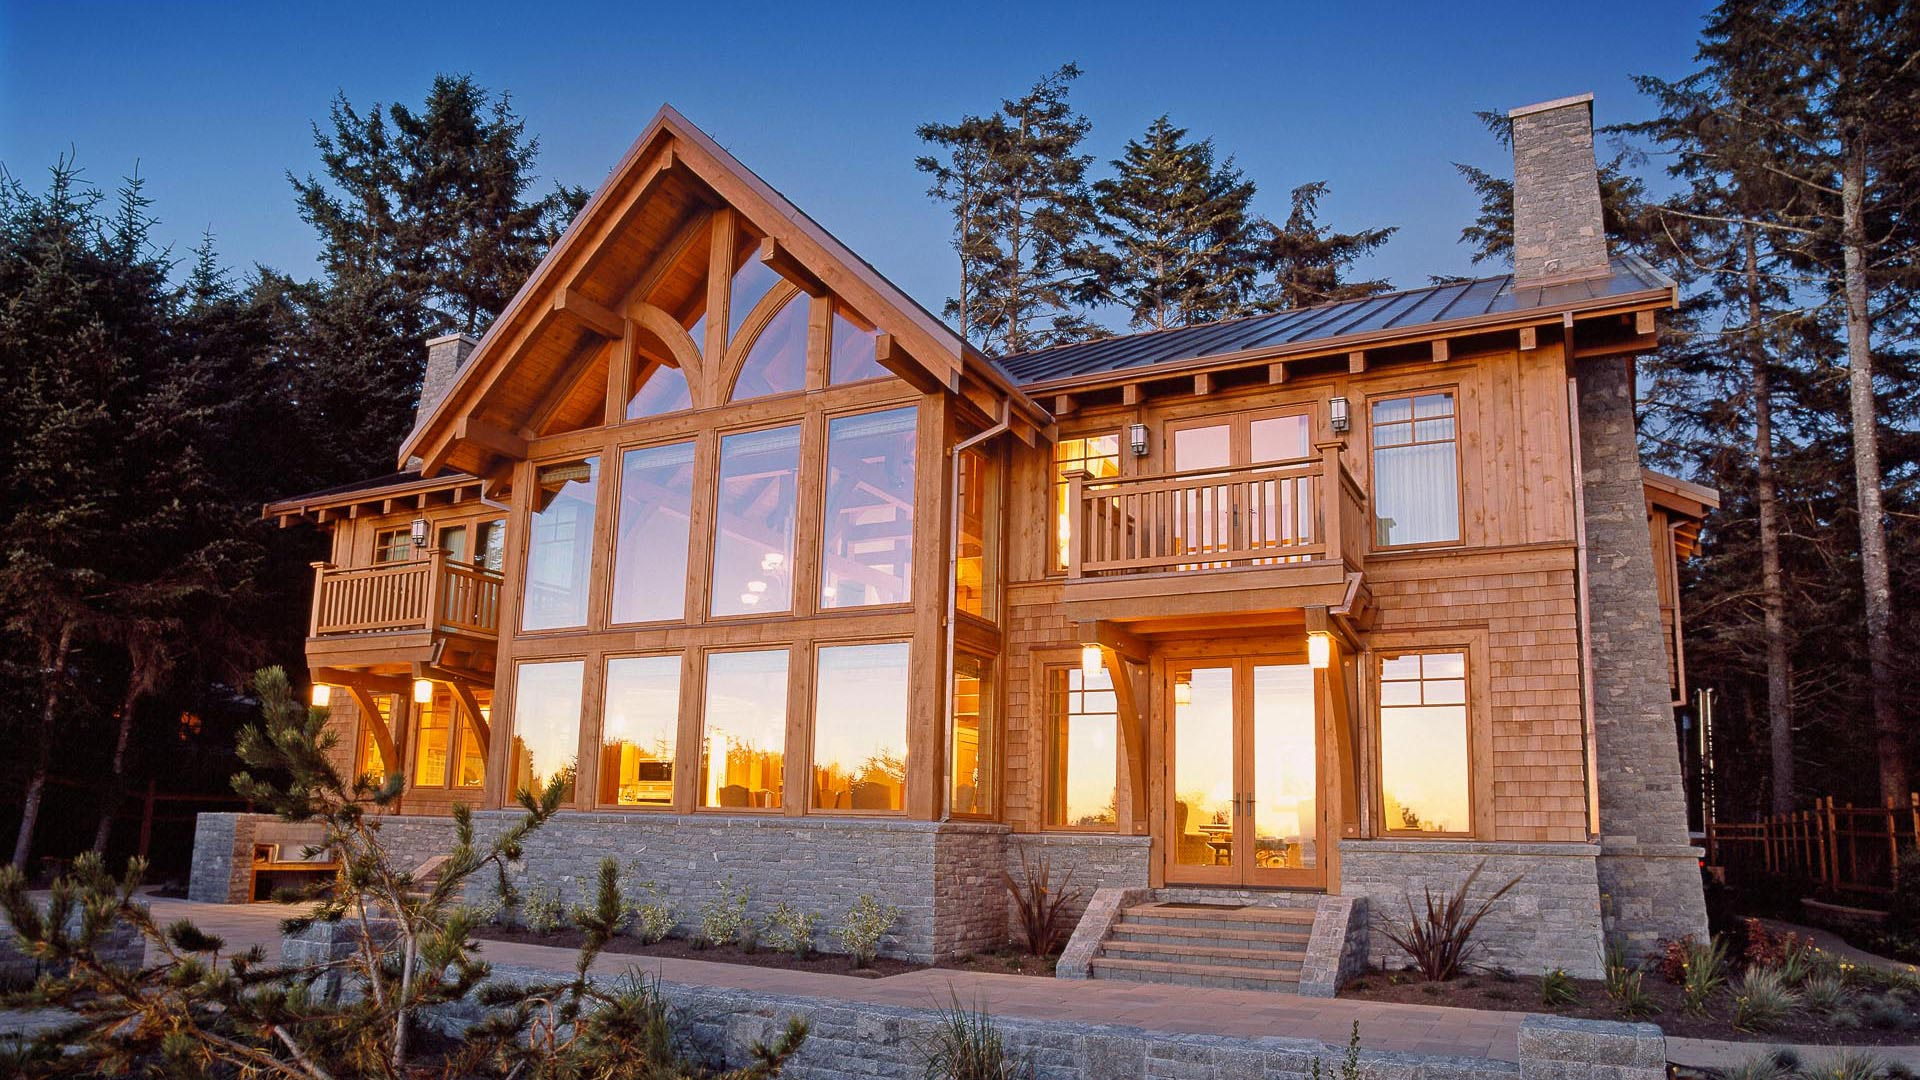 Classic timber frame island timber frame for Small timber frame house designs